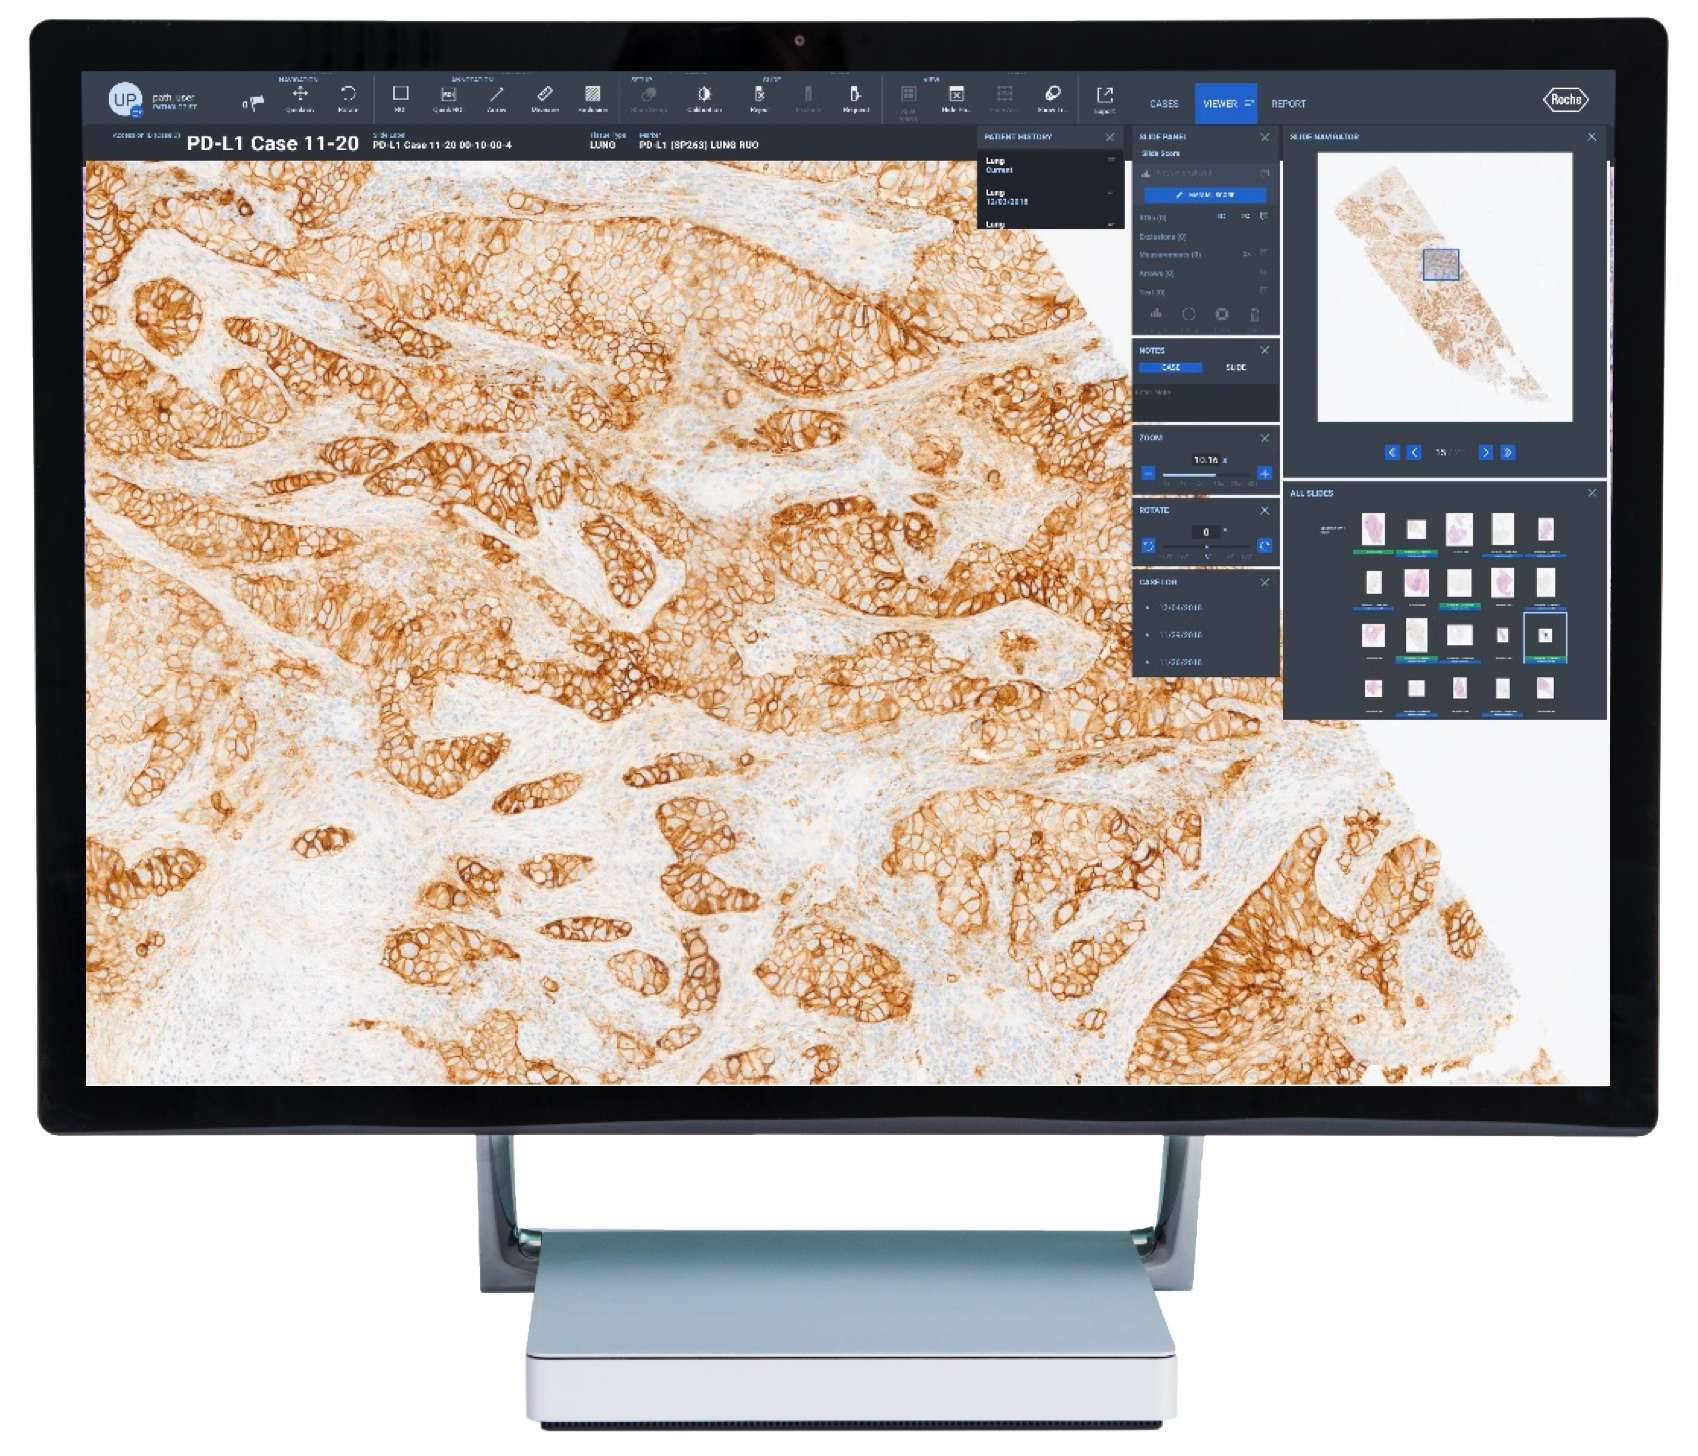 NAVIFY Digital Pathology